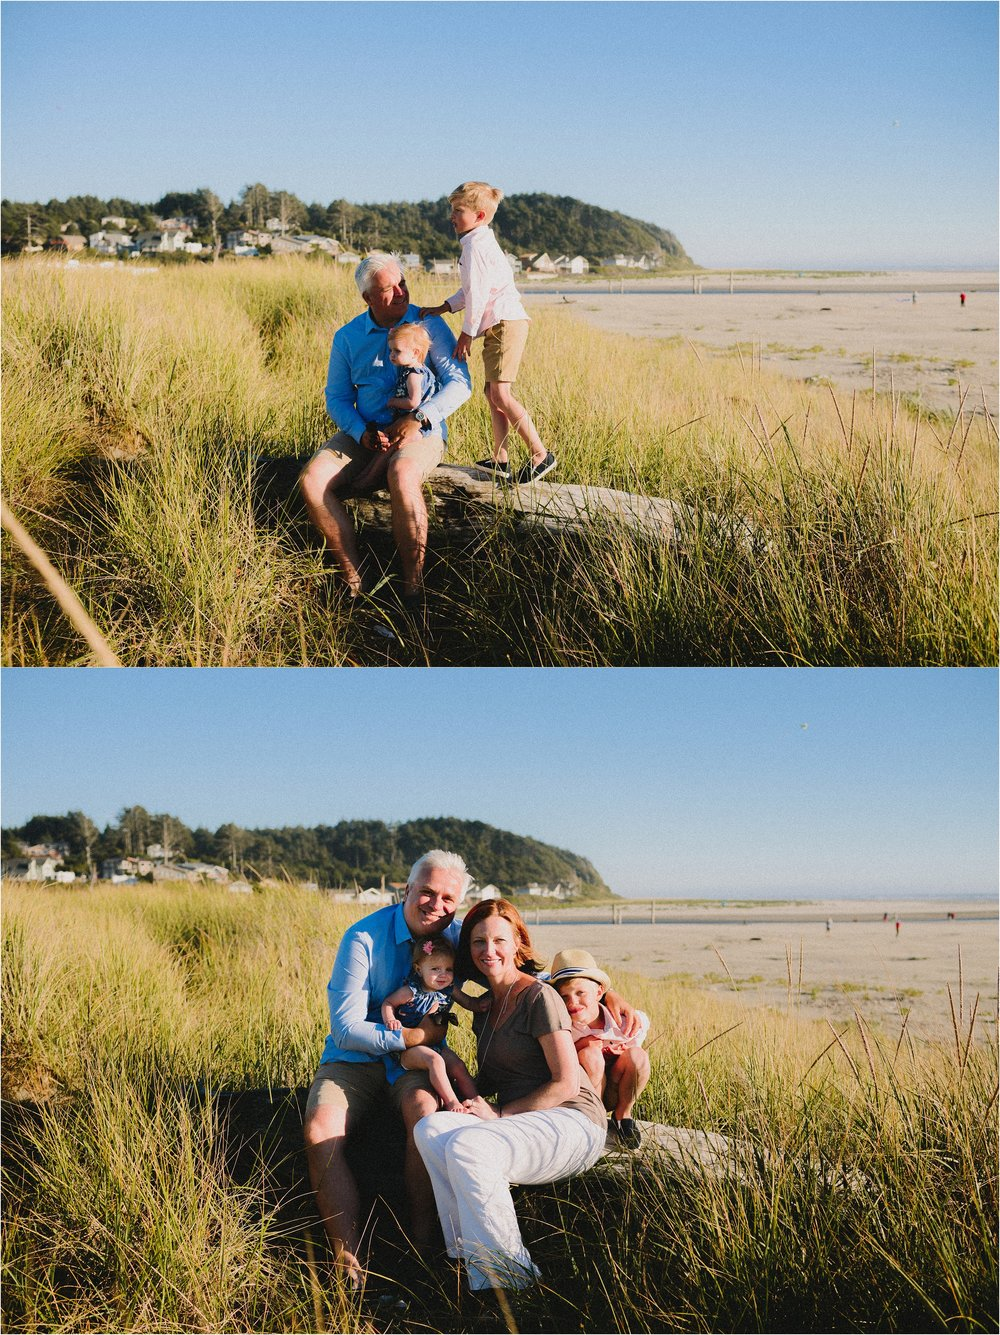 pacific-beach-washington-family-session-jannicka-mayte-anchorage-alaska-family-photographer_0013.jpg